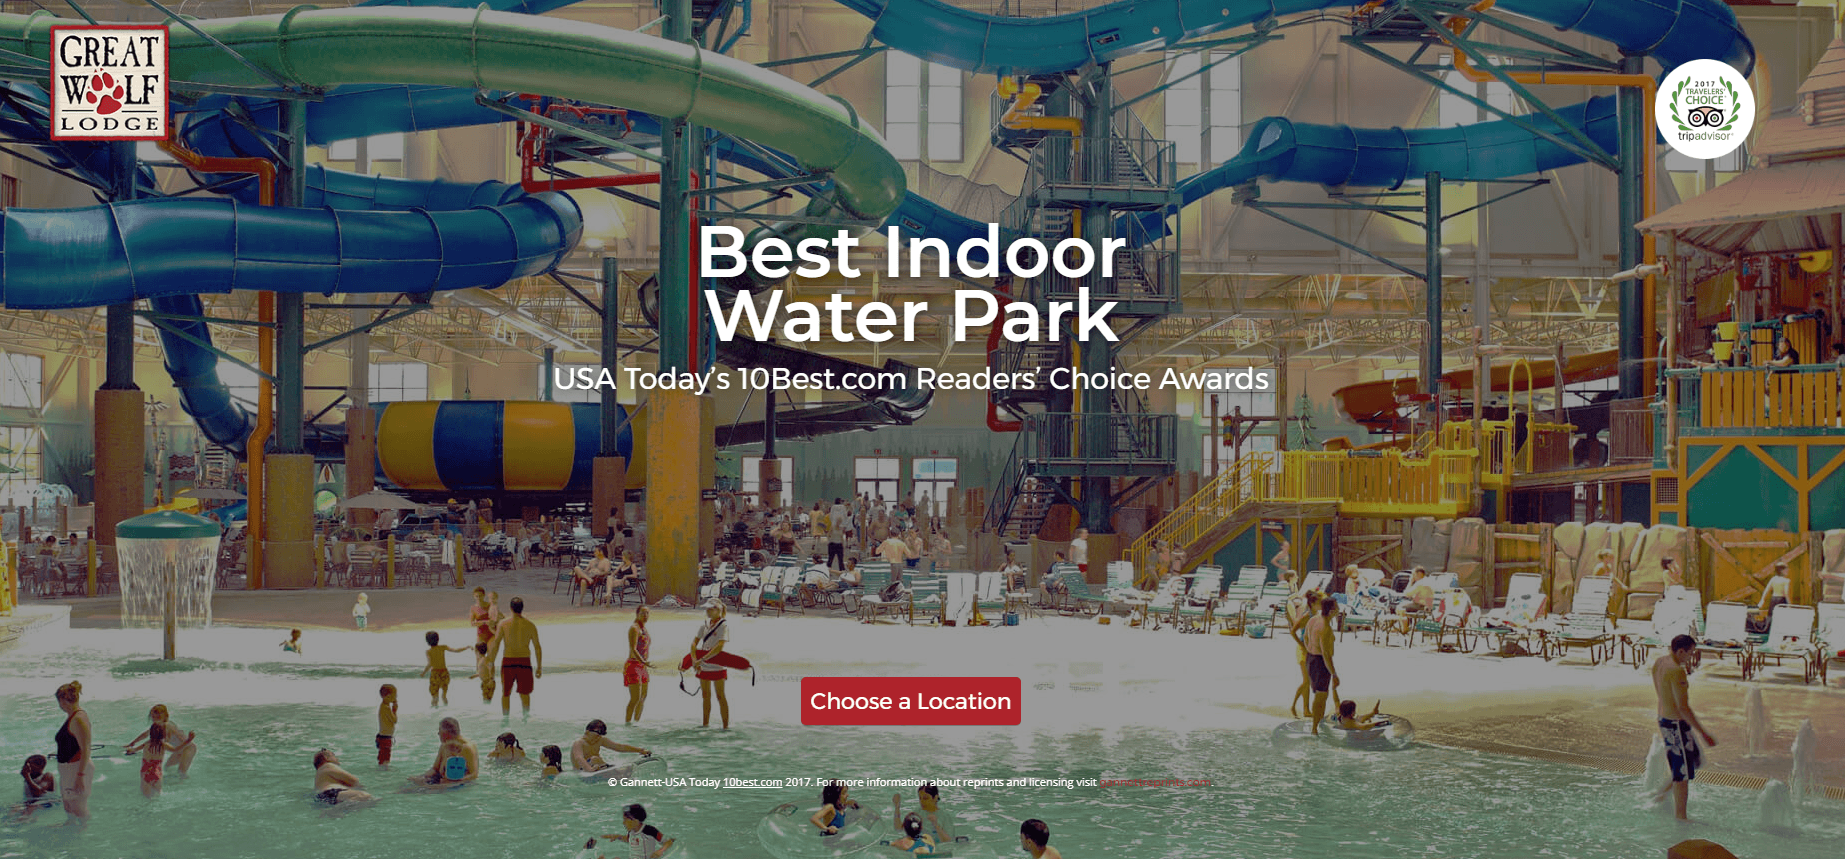 Great Wolf Resorts - Home Page